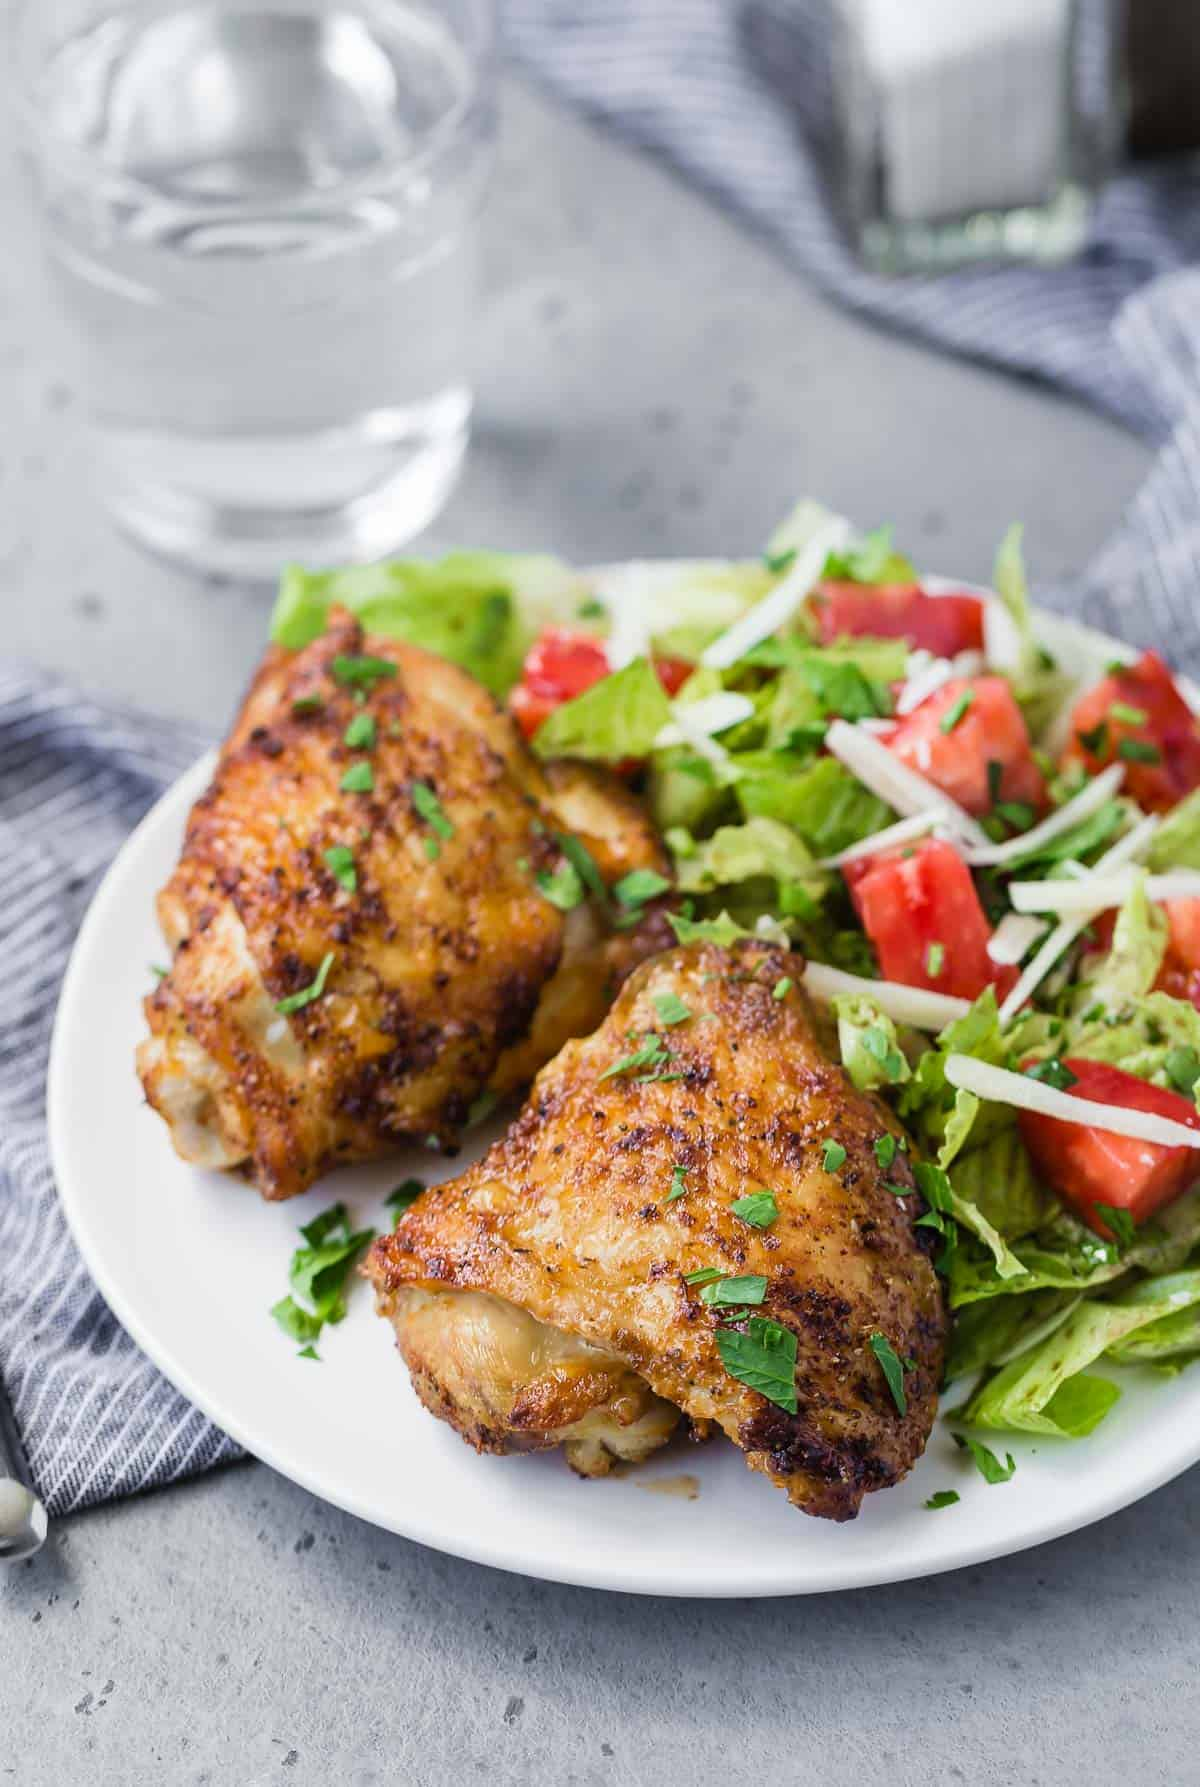 Two chicken thighs on a plate with a tossed salad.